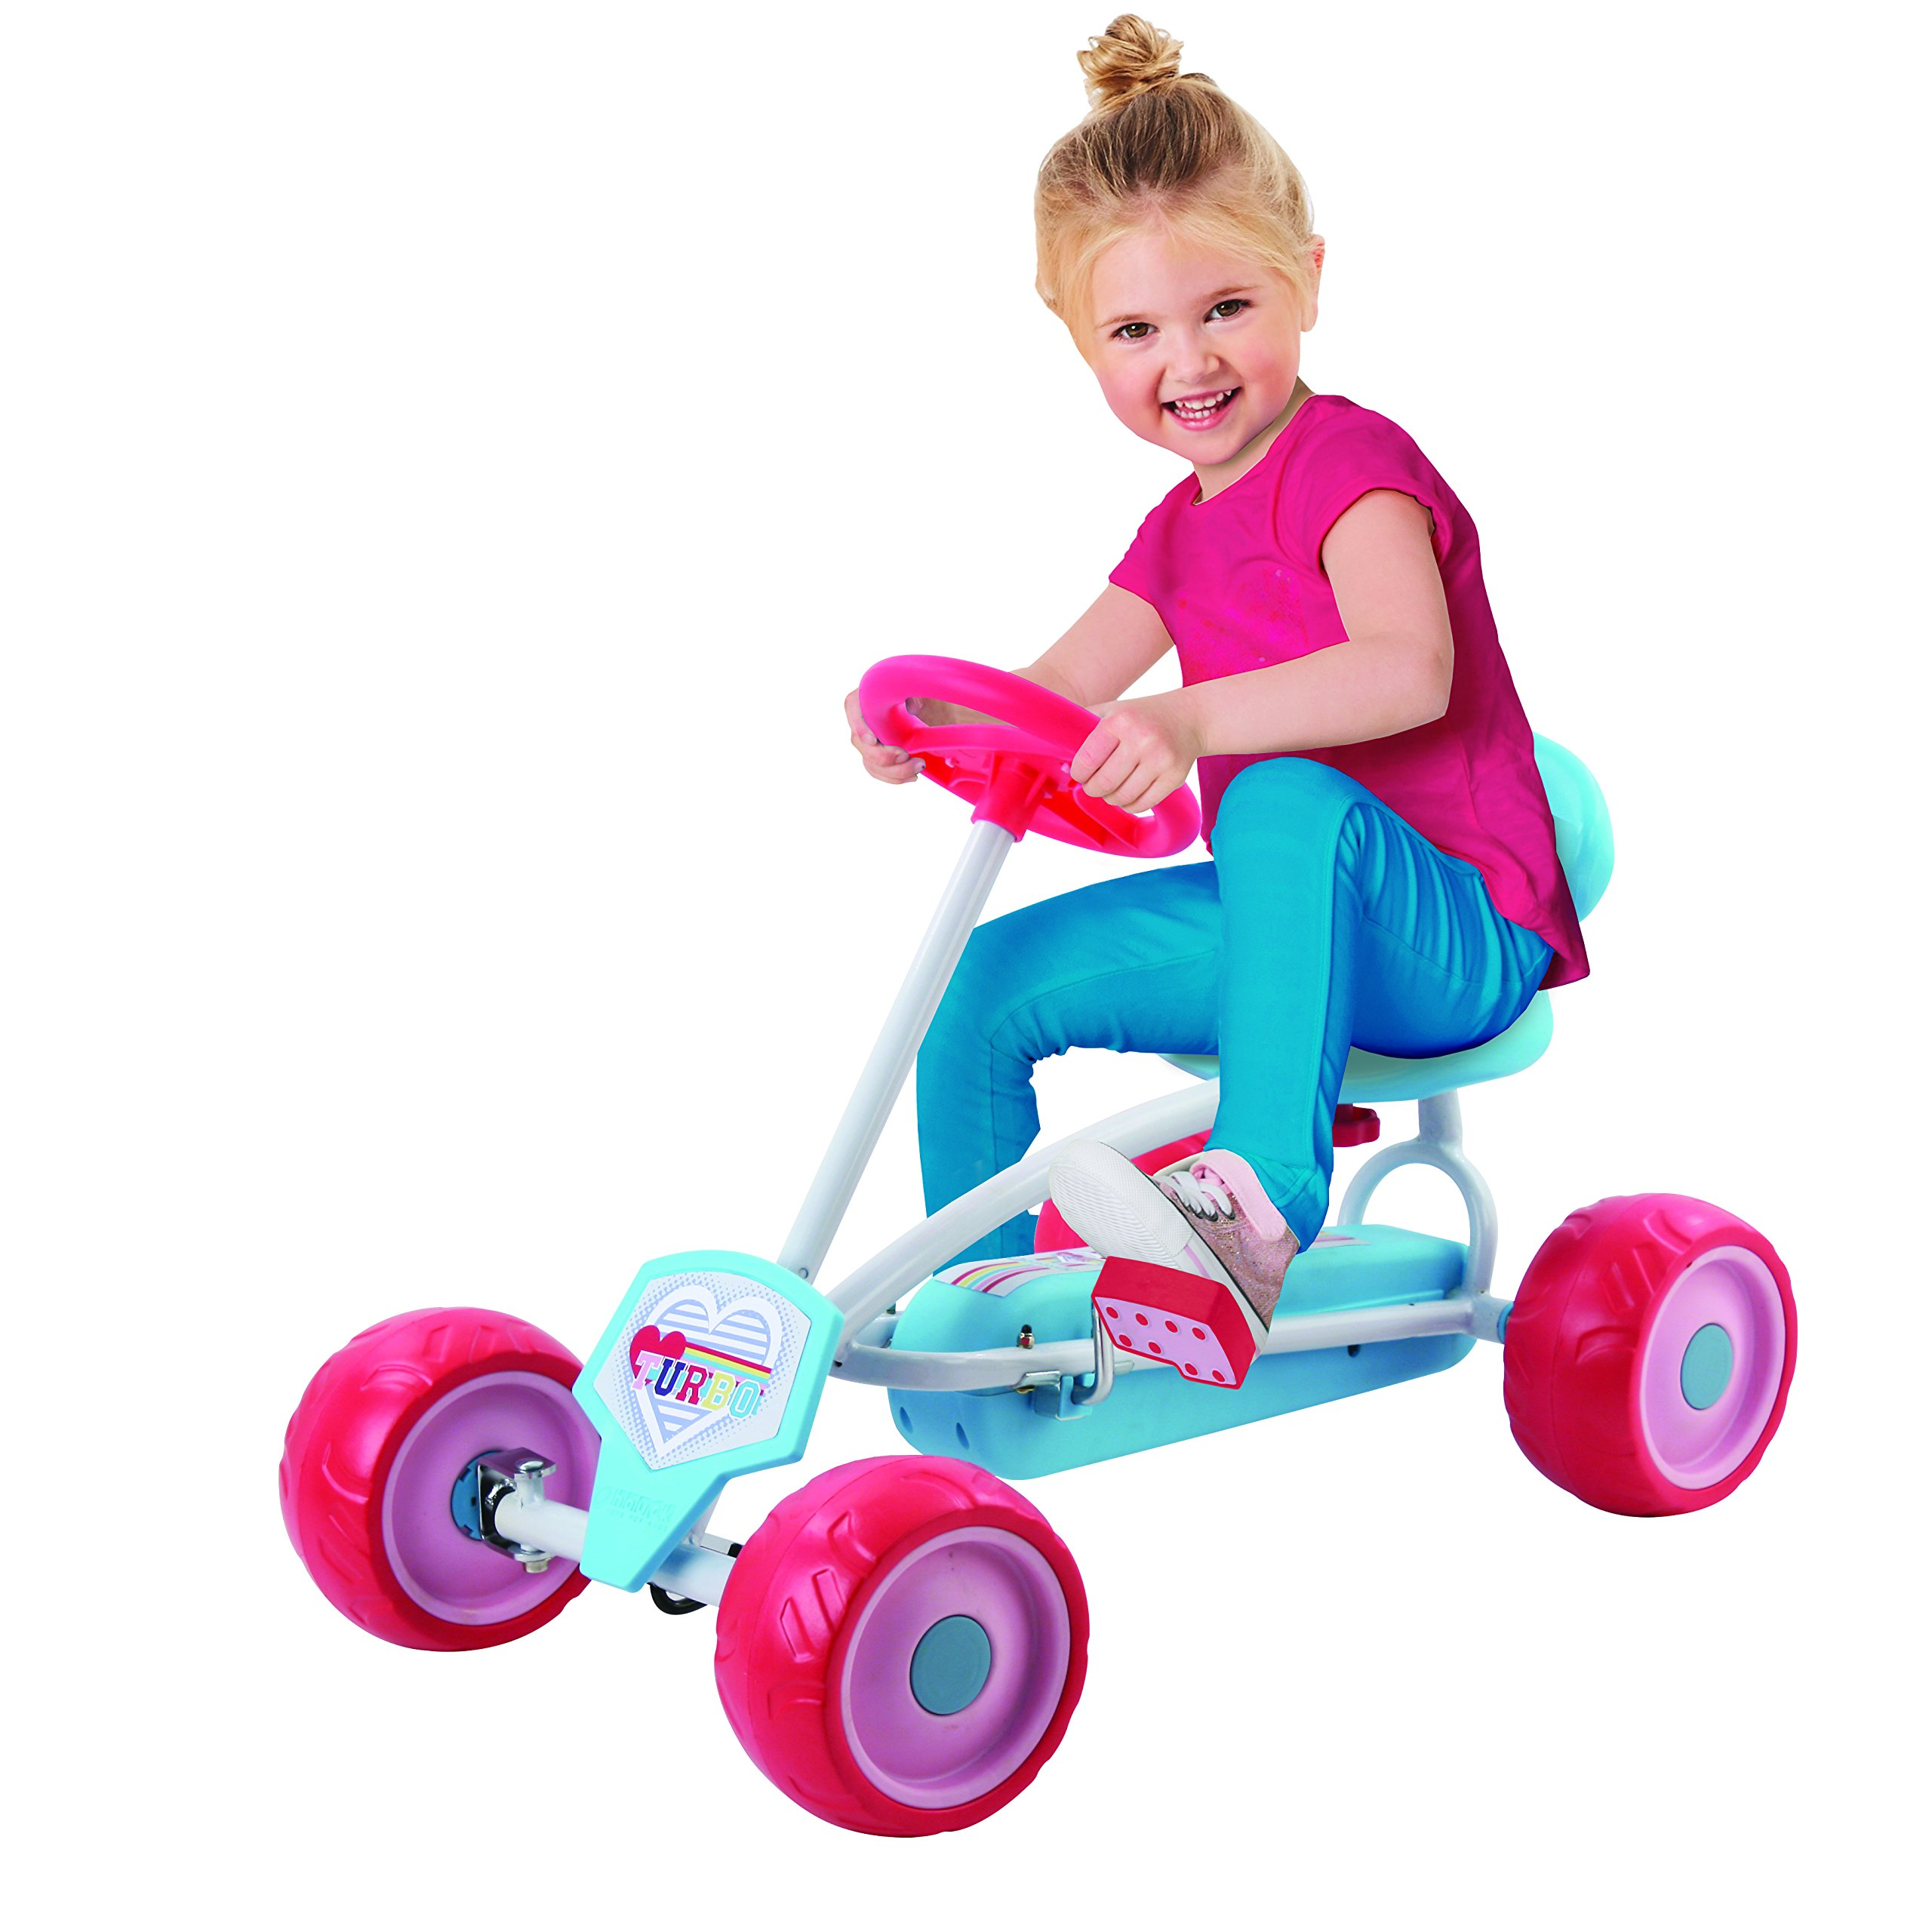 Hauck Lil'Turbo Pedal Go Kart, Blue/Pink by Hauck